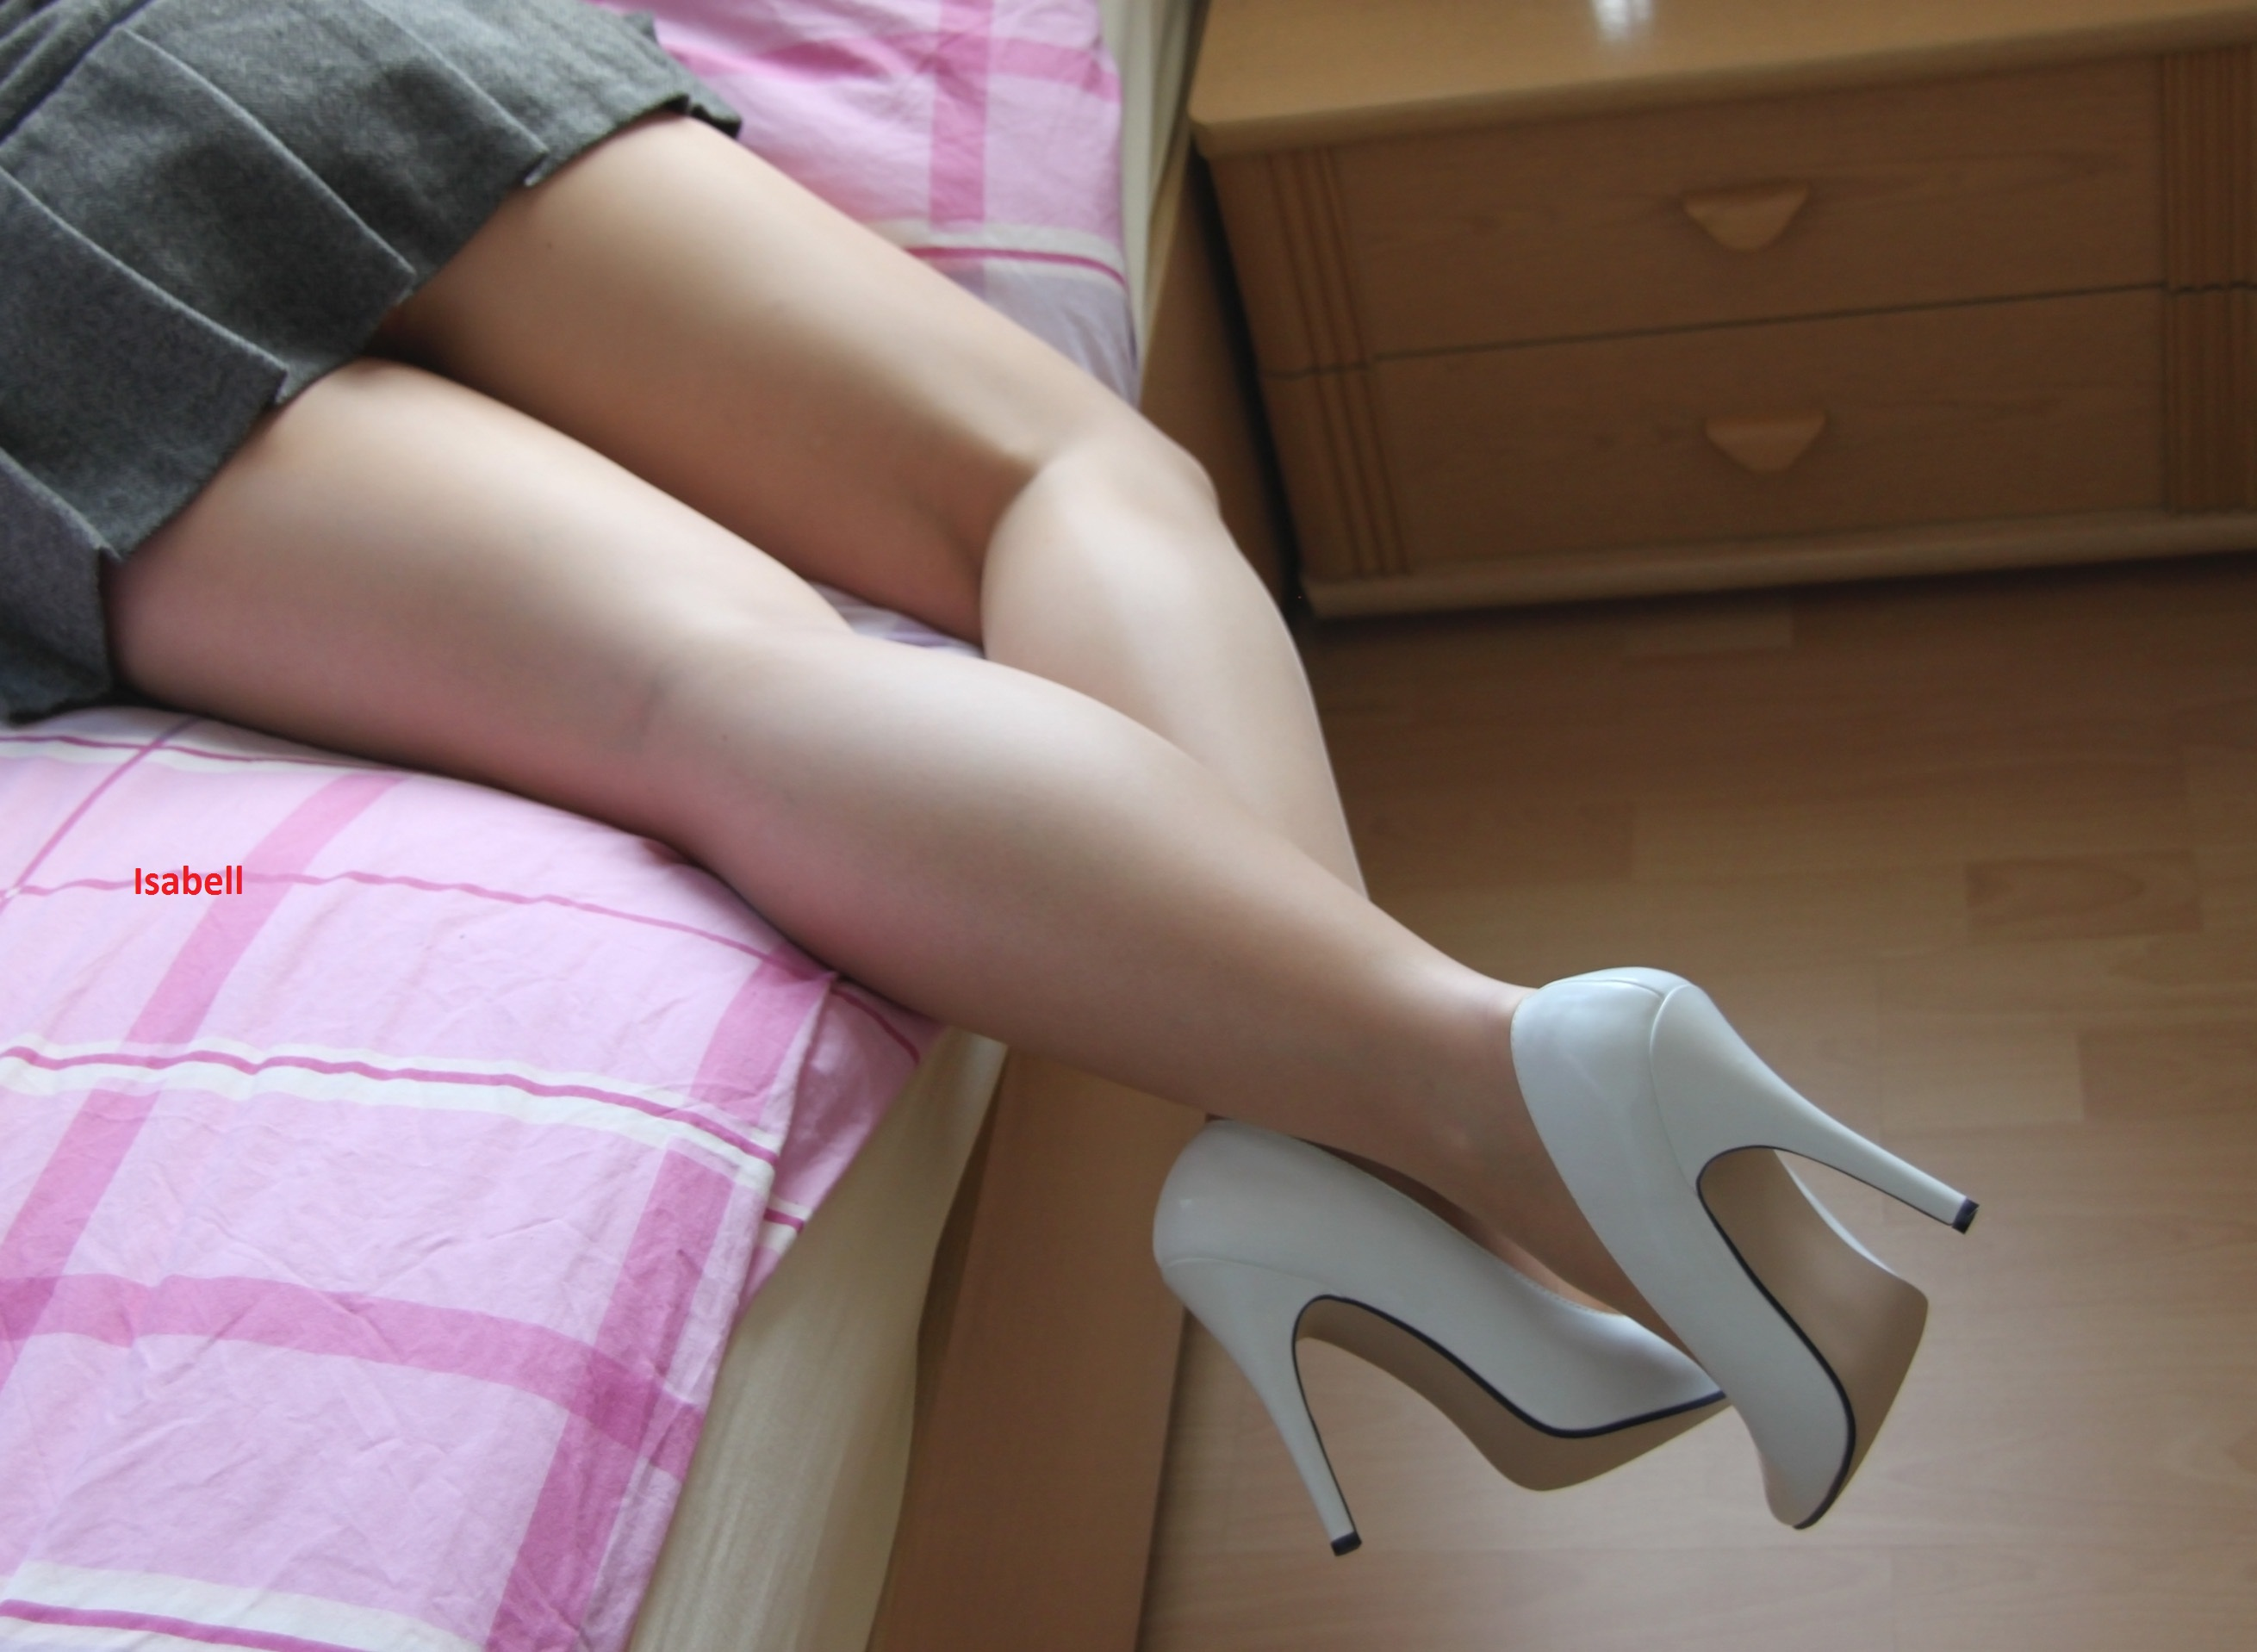 Wallpaper Pantyhose Joint Girl Foot Floor Stocking